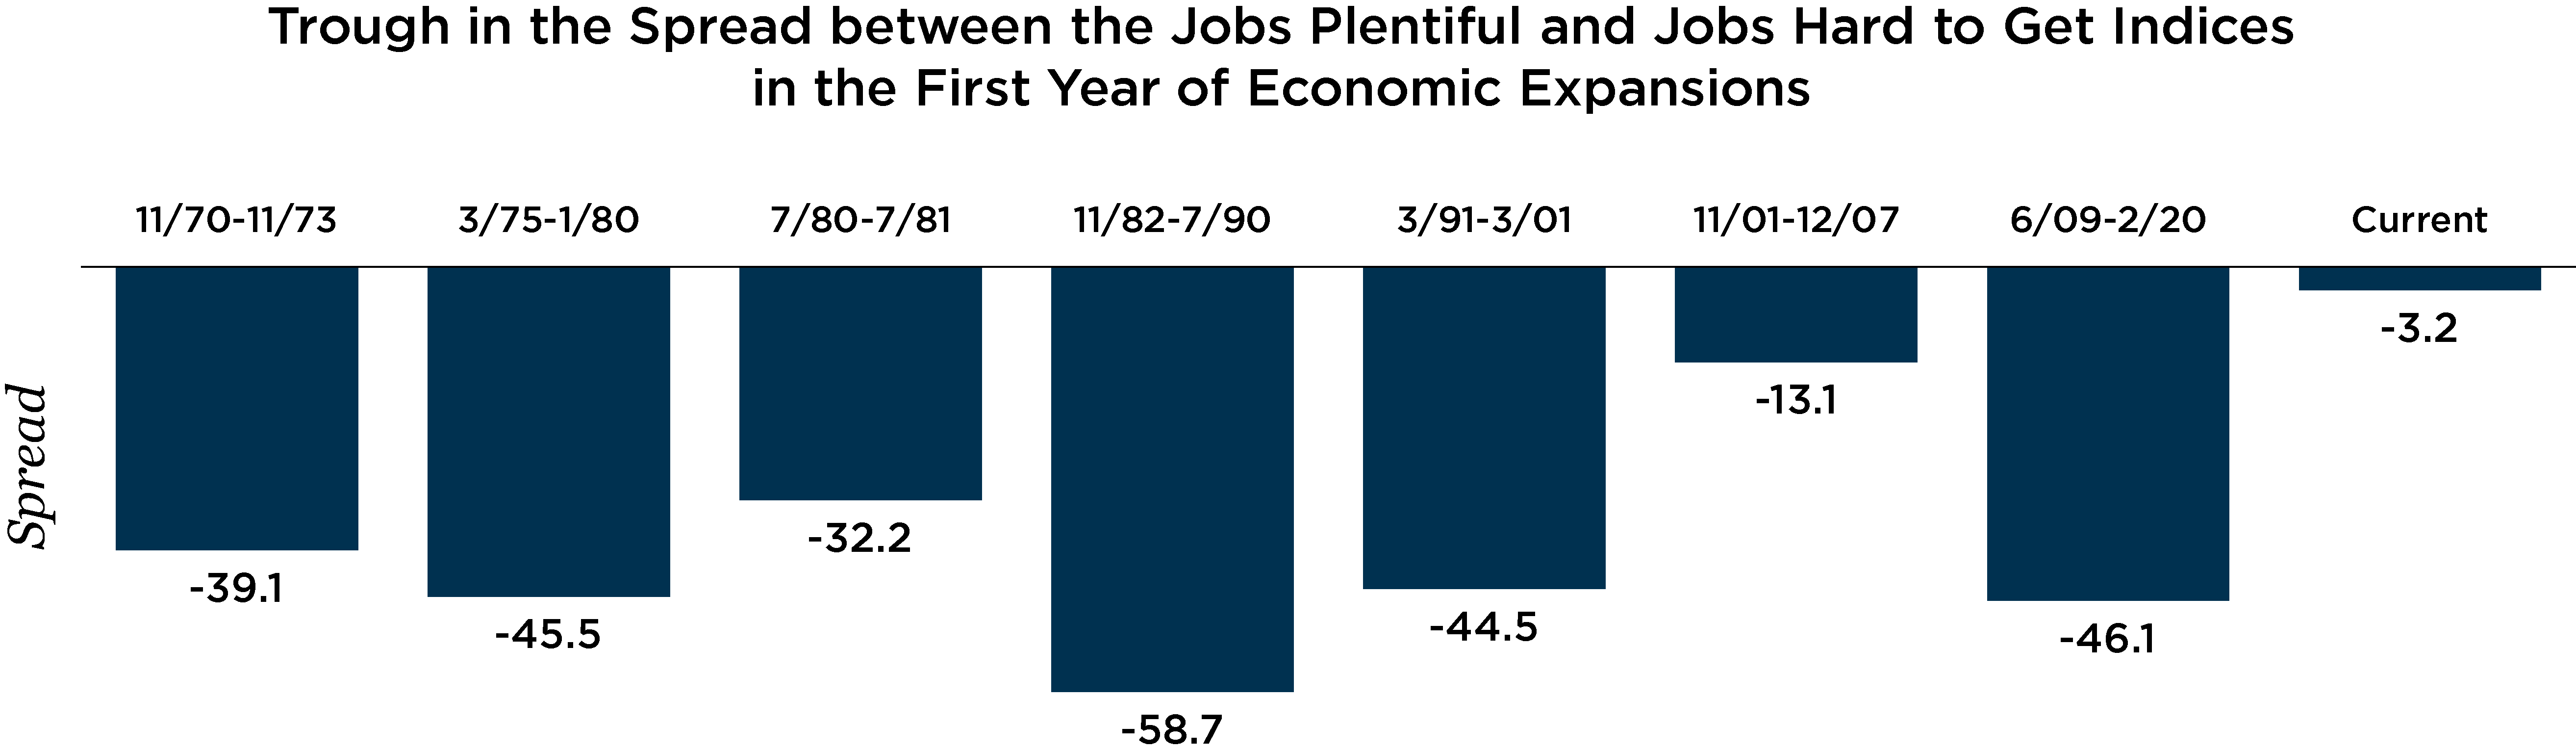 Graph depicting the trough in the spread between the jobs plentiful and jobs hard to get indices